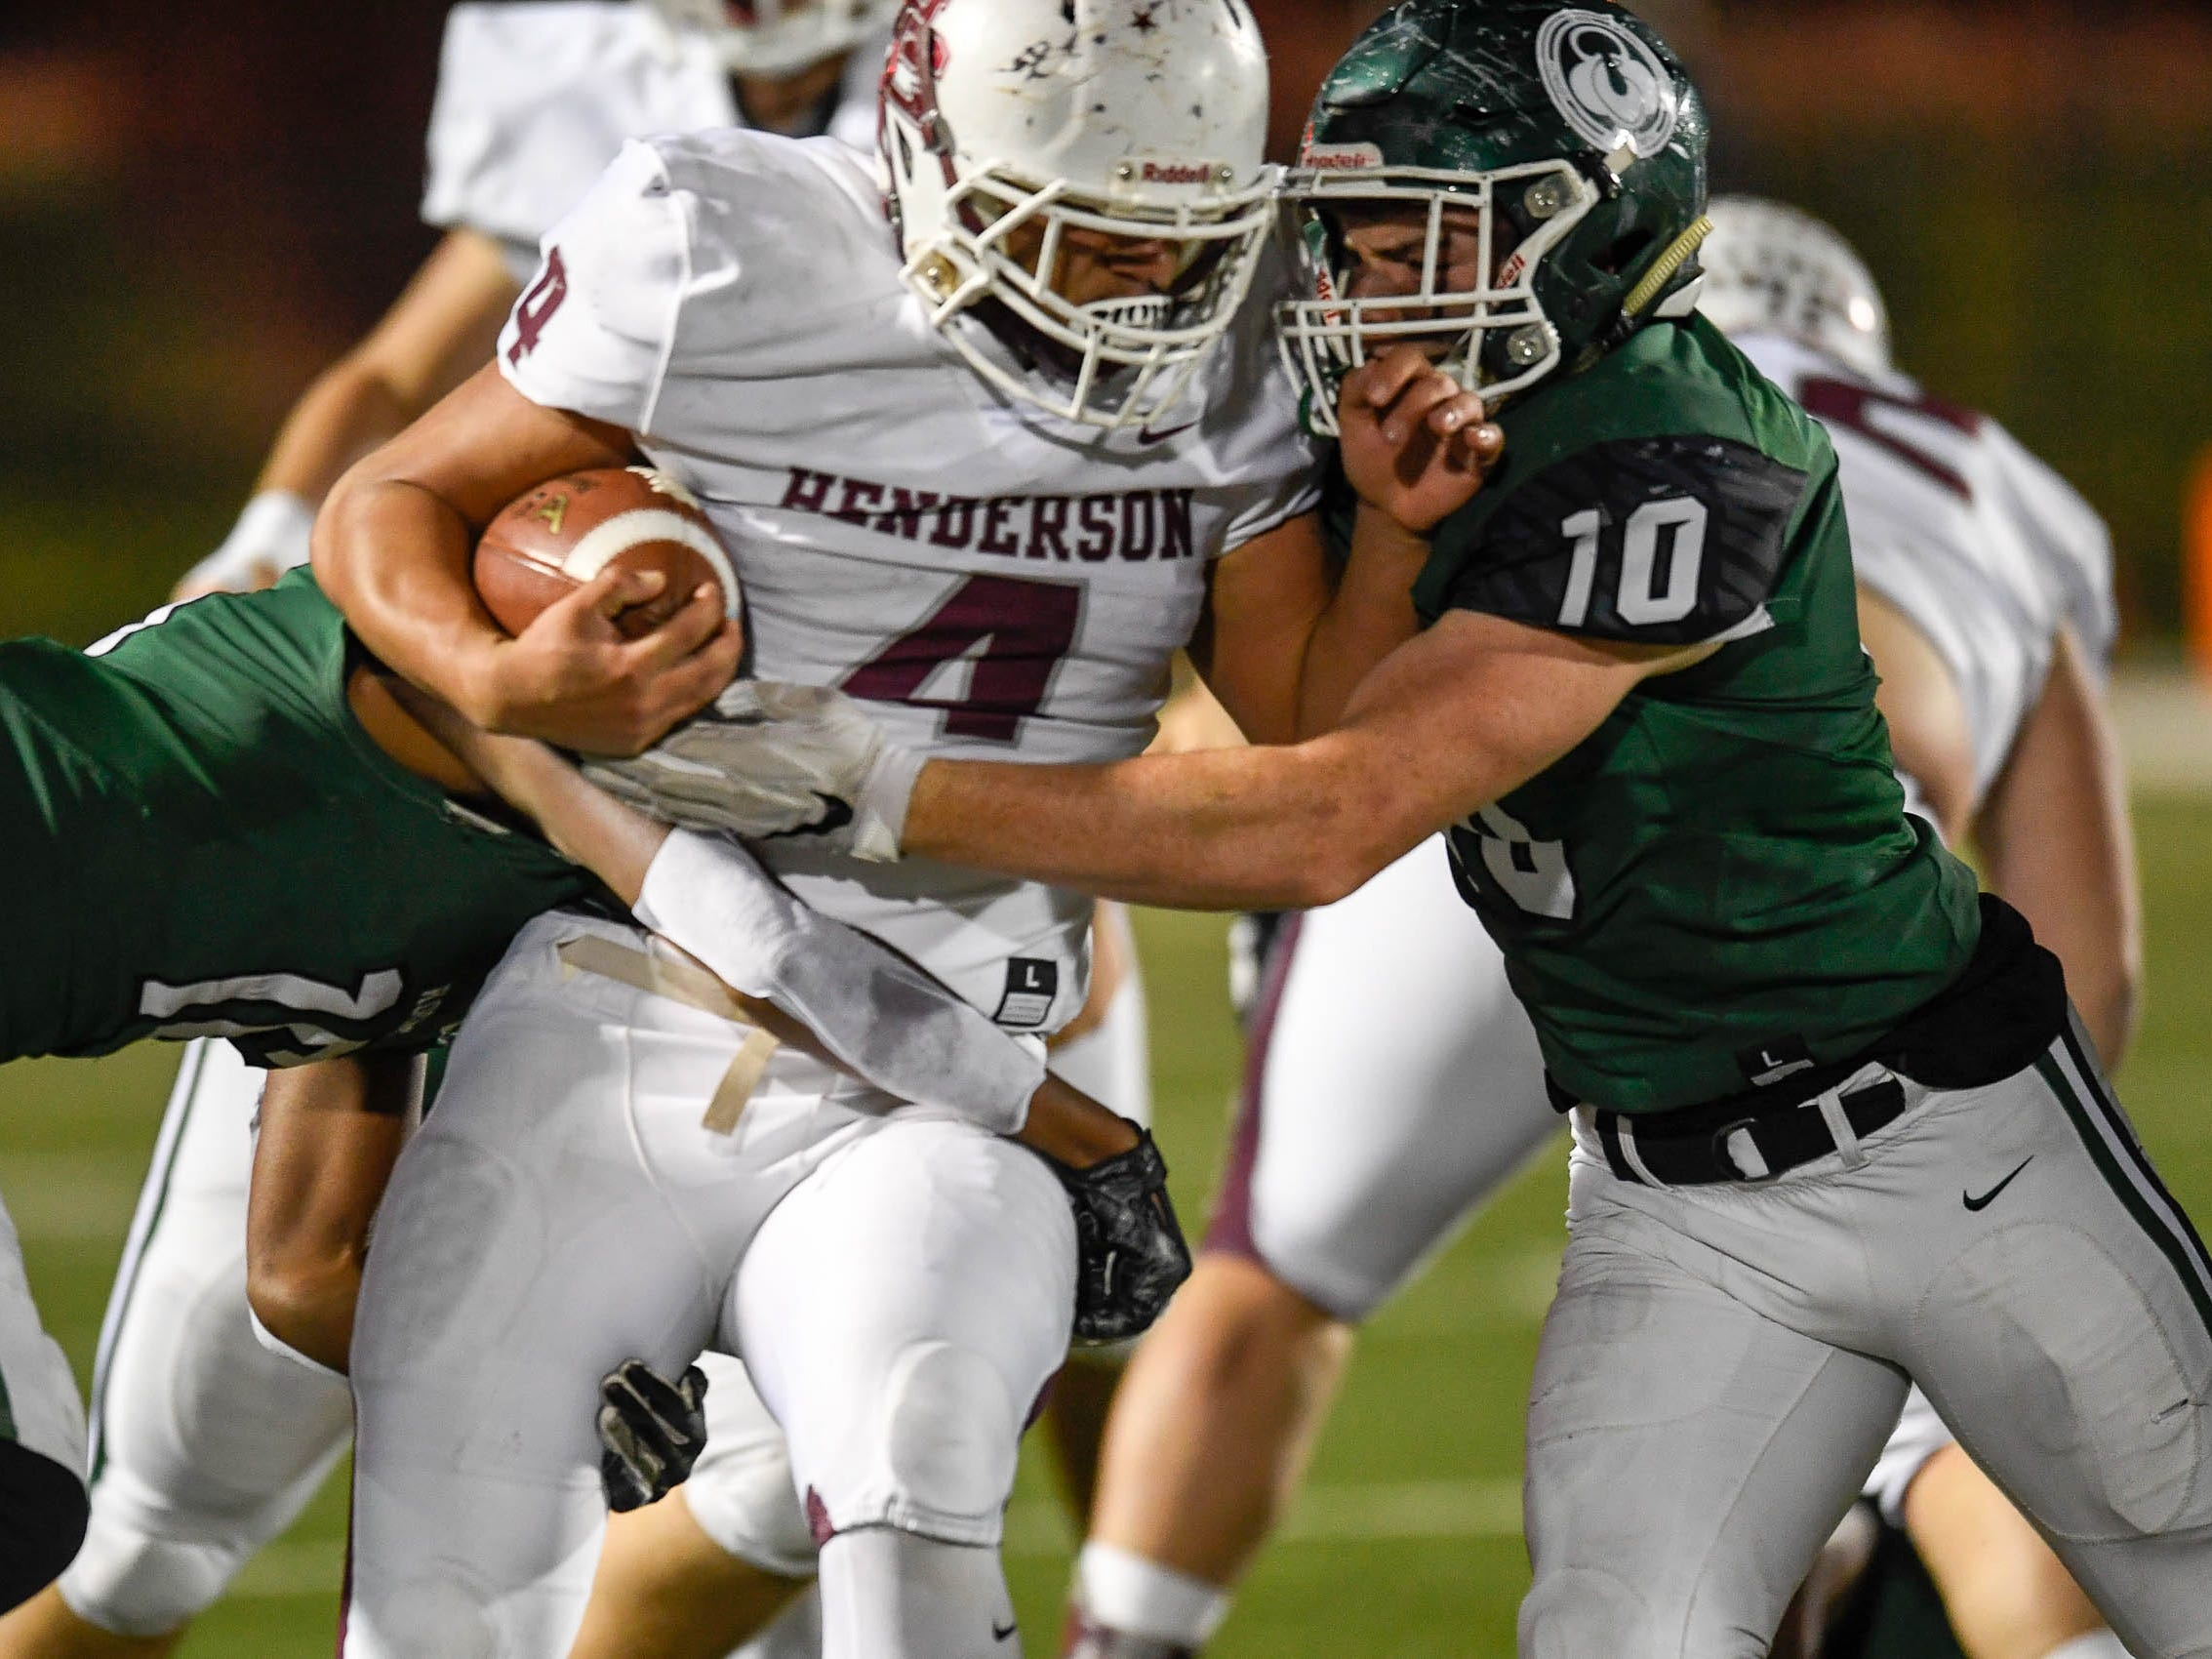 Henderson's Layton Fletcher (4)  runs between defense from Trinity's Blake Ruffin (16) and Charlie Ely (10) as the Henderson County Colonels play the Trinity Shamrocks in the second round of the Class 6-A football playoffs at Marshall Stadium in Louisville Friday, November 9, 2018.